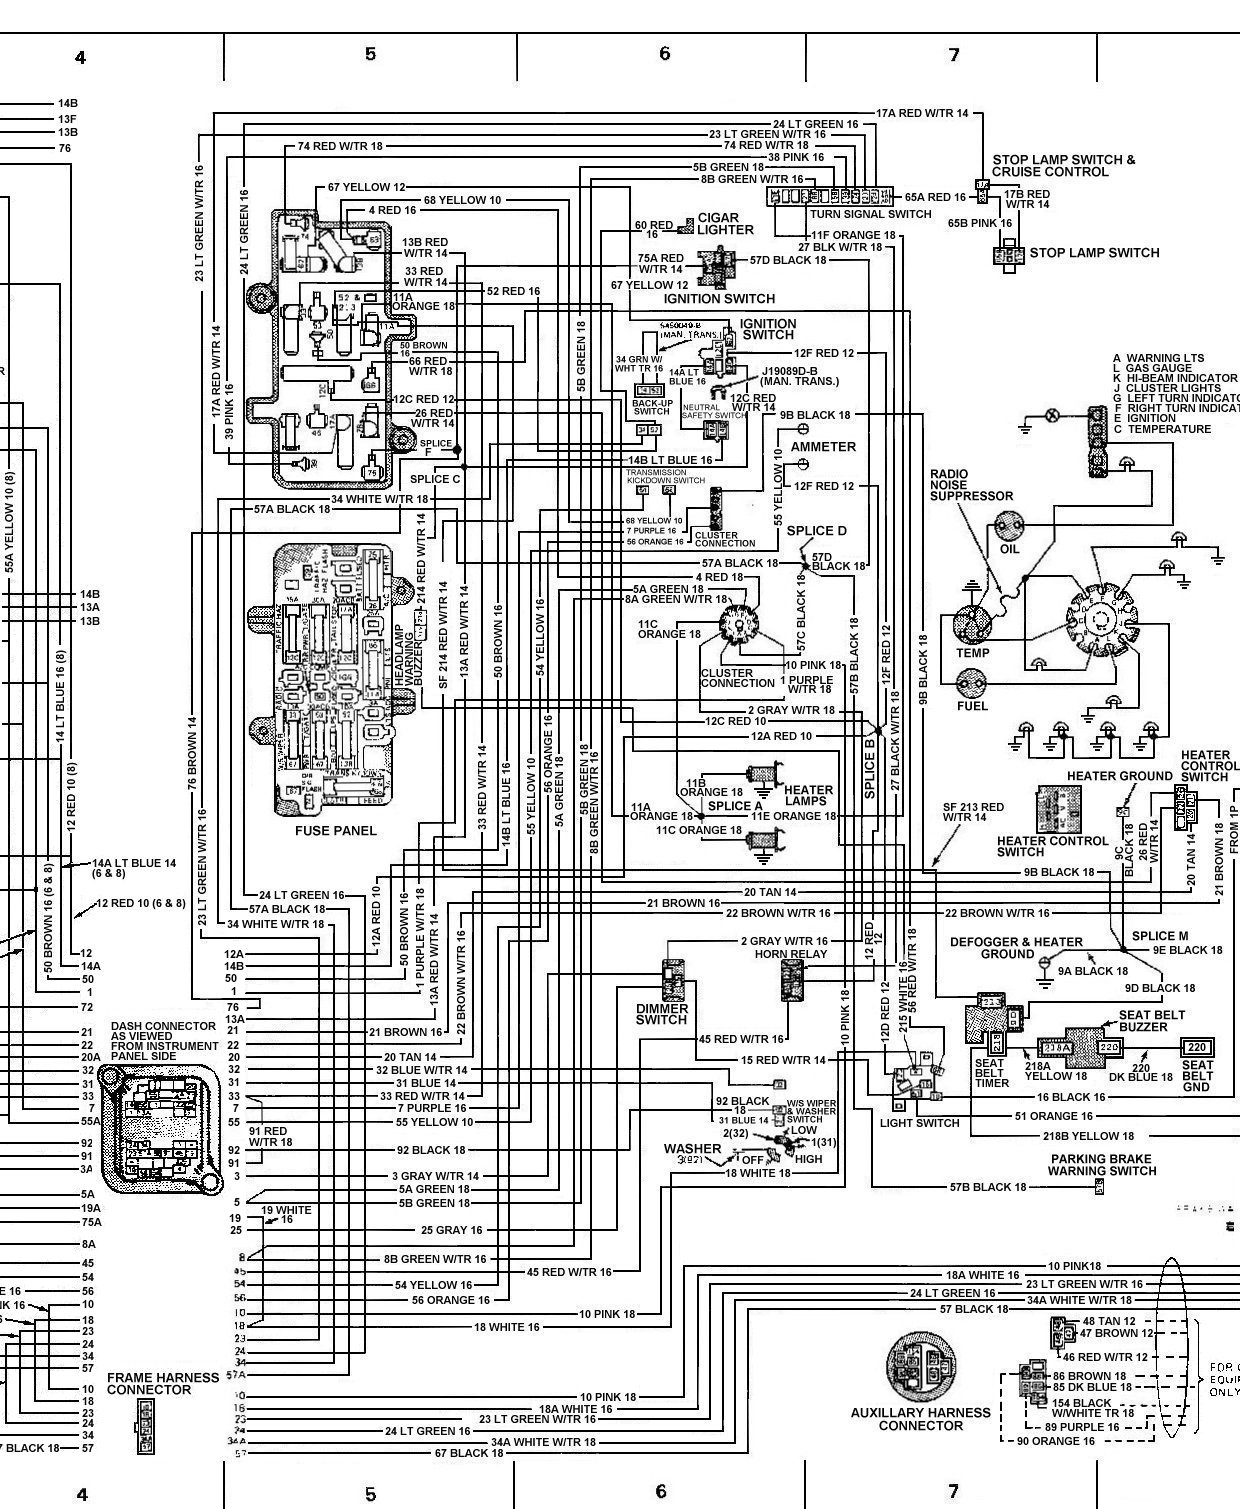 89 Toyota Pickup 4x4 Engine Wiring Diagram further 2007 350z Fuse Box likewise Infiniti J30 J30 1993 Specs And Images likewise P 0900c15280265568 additionally Sr20de Fuel Filter. on 1993 240sx fuel diagram